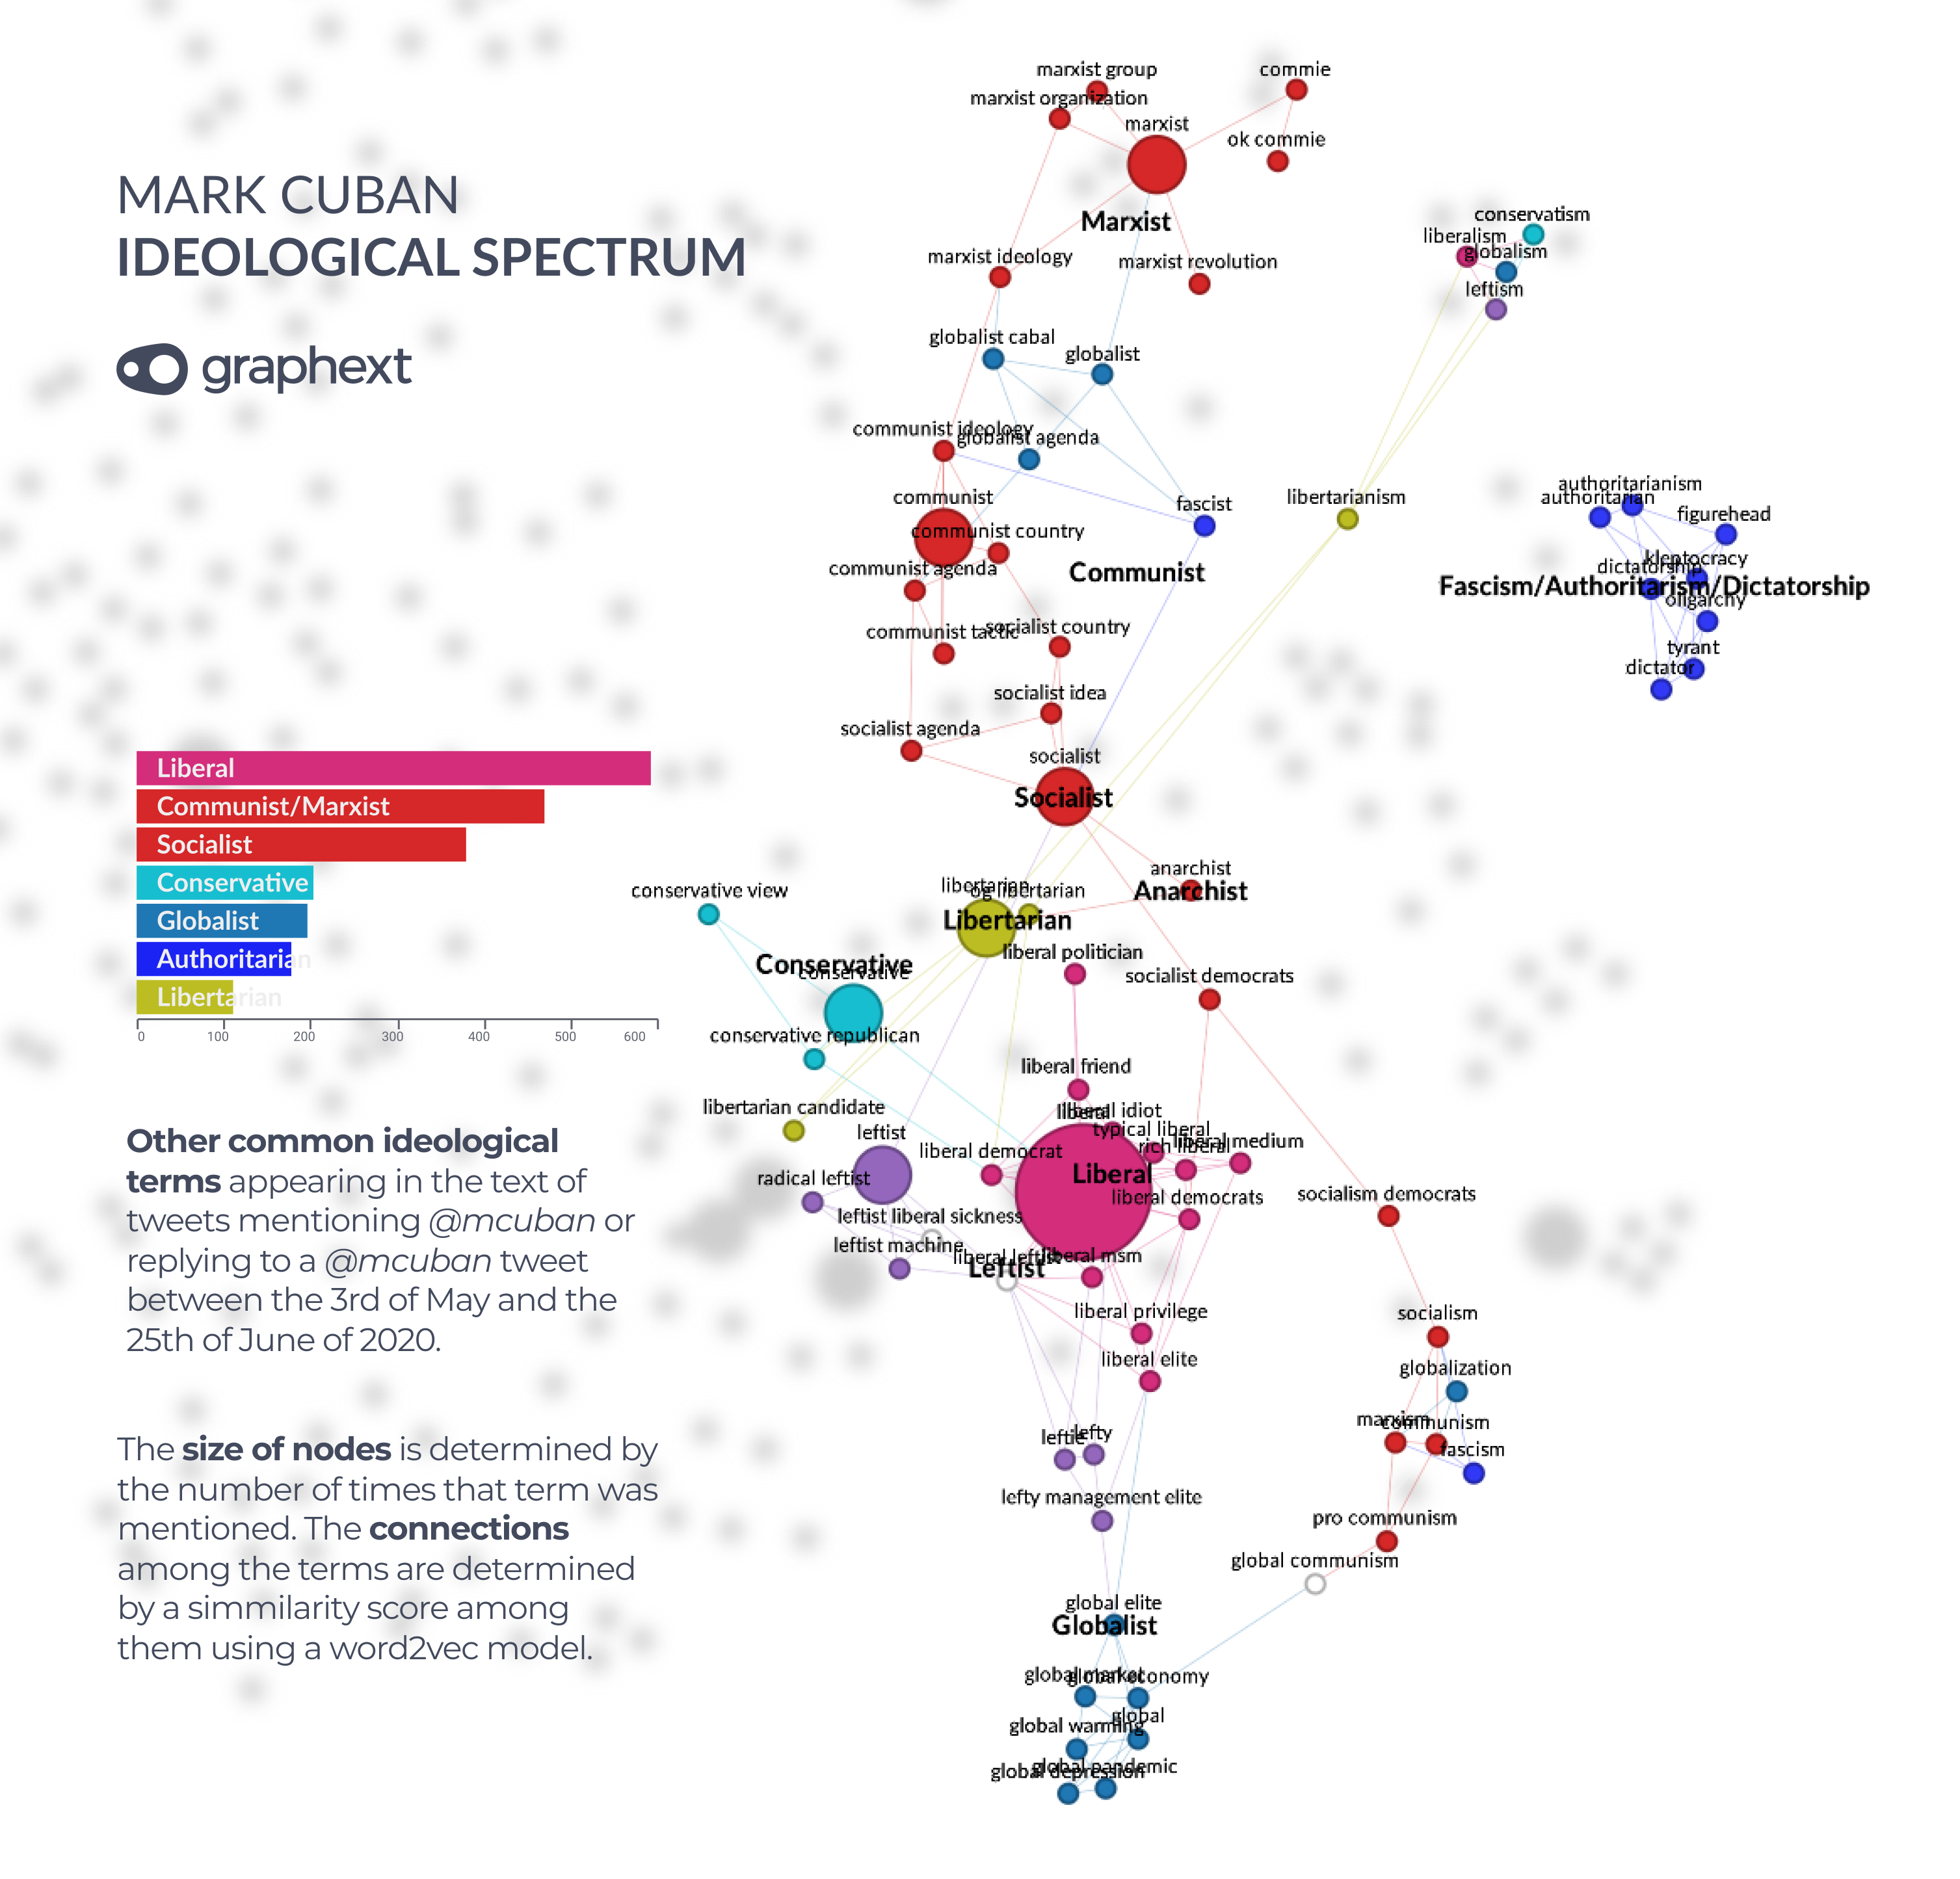 A network visualisation showing political terms associated with Mark Cuban inside of the ideological spectrum.